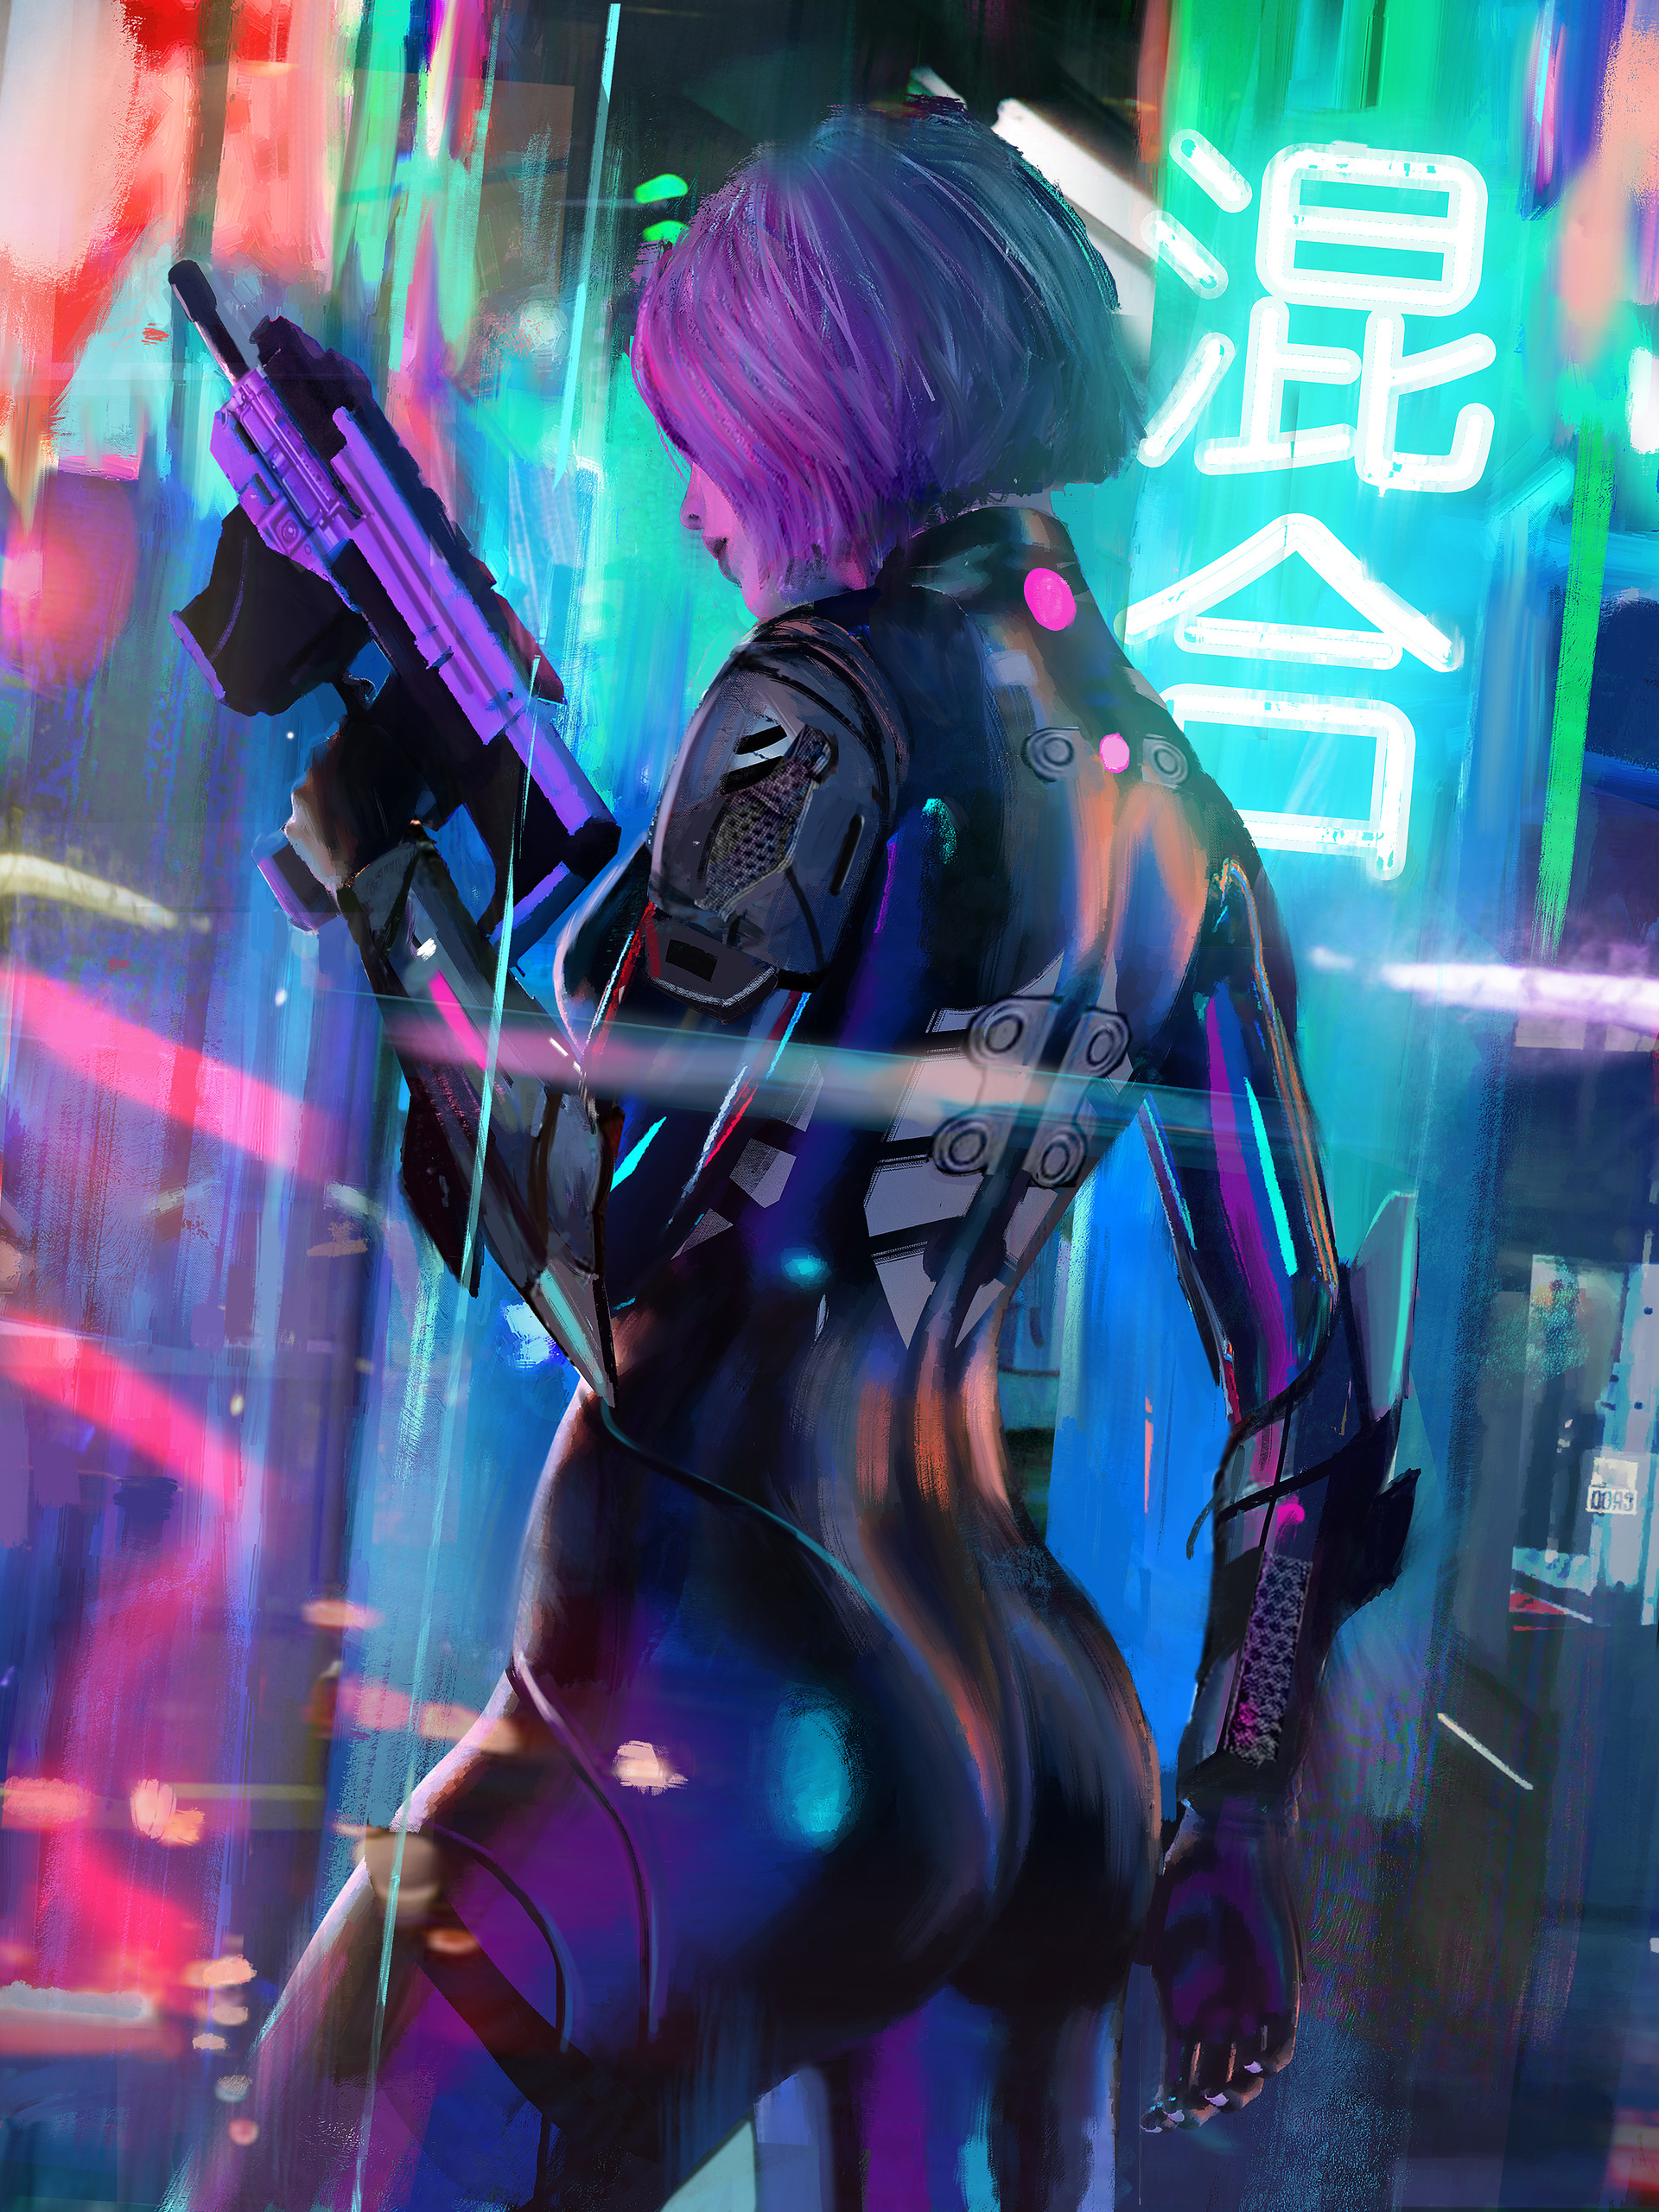 Neo-noir-inspired Conceptual Illustrations by Tony Skeor